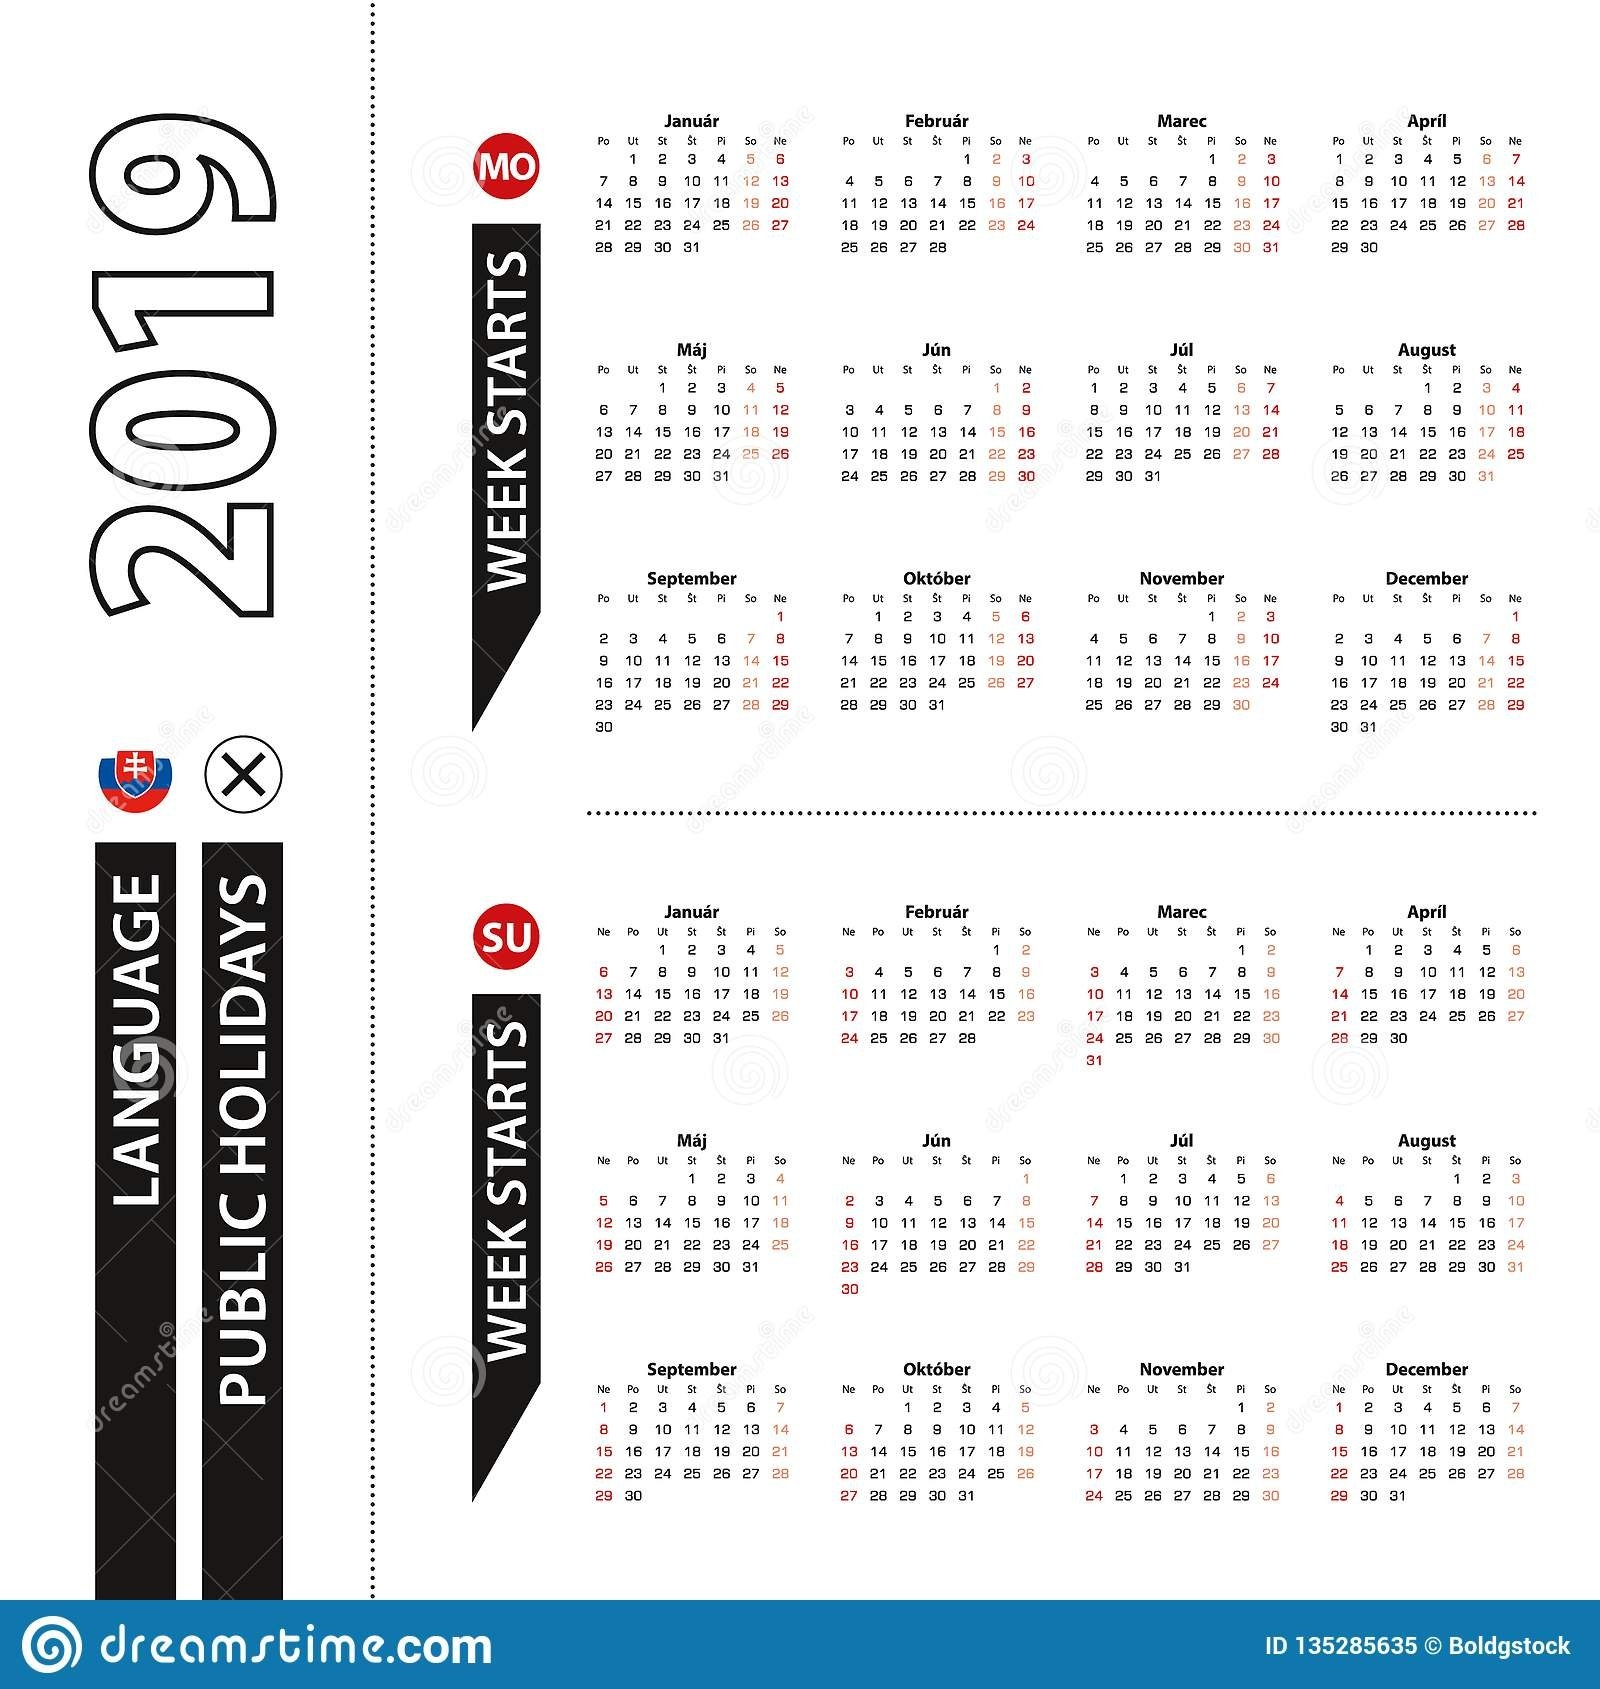 Two Versions Of 2019 Calendar In Slovak, Week Starts From Monday And Calendar 2019 Ut